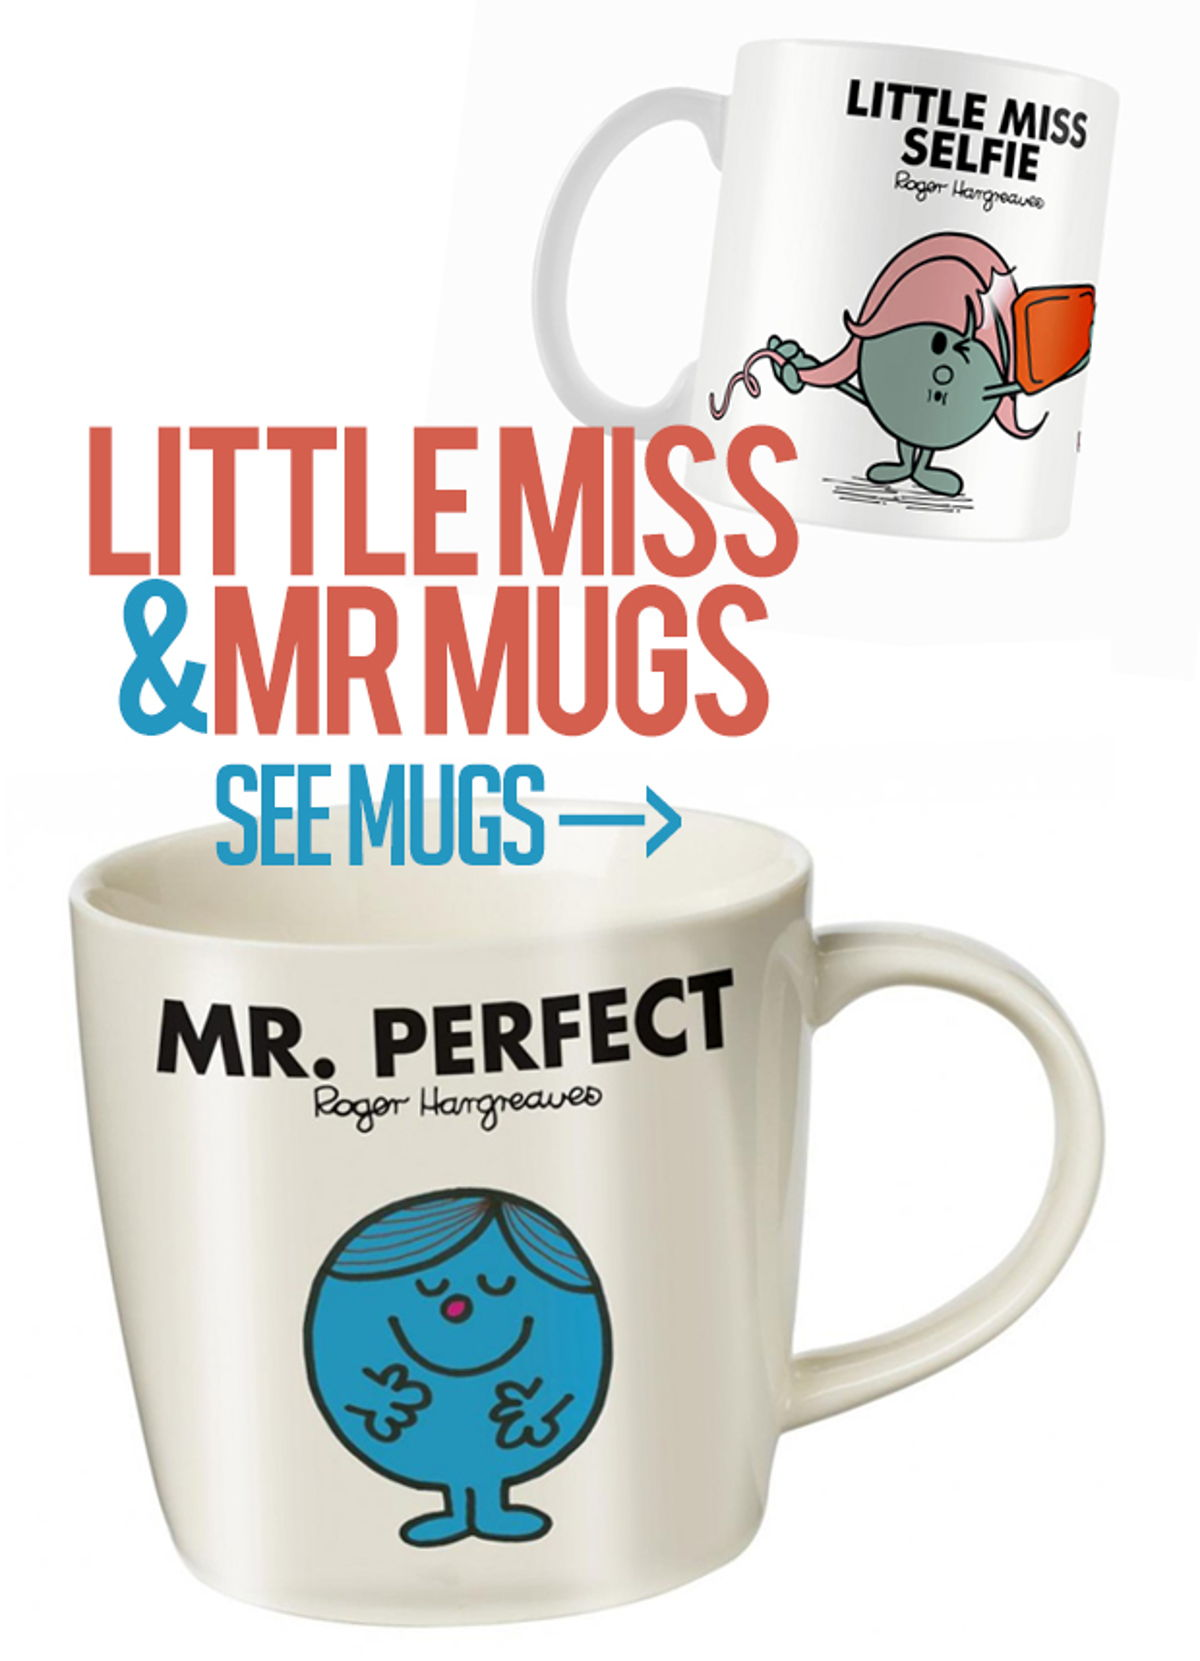 Check out Mercuri's wide selection of Mugs